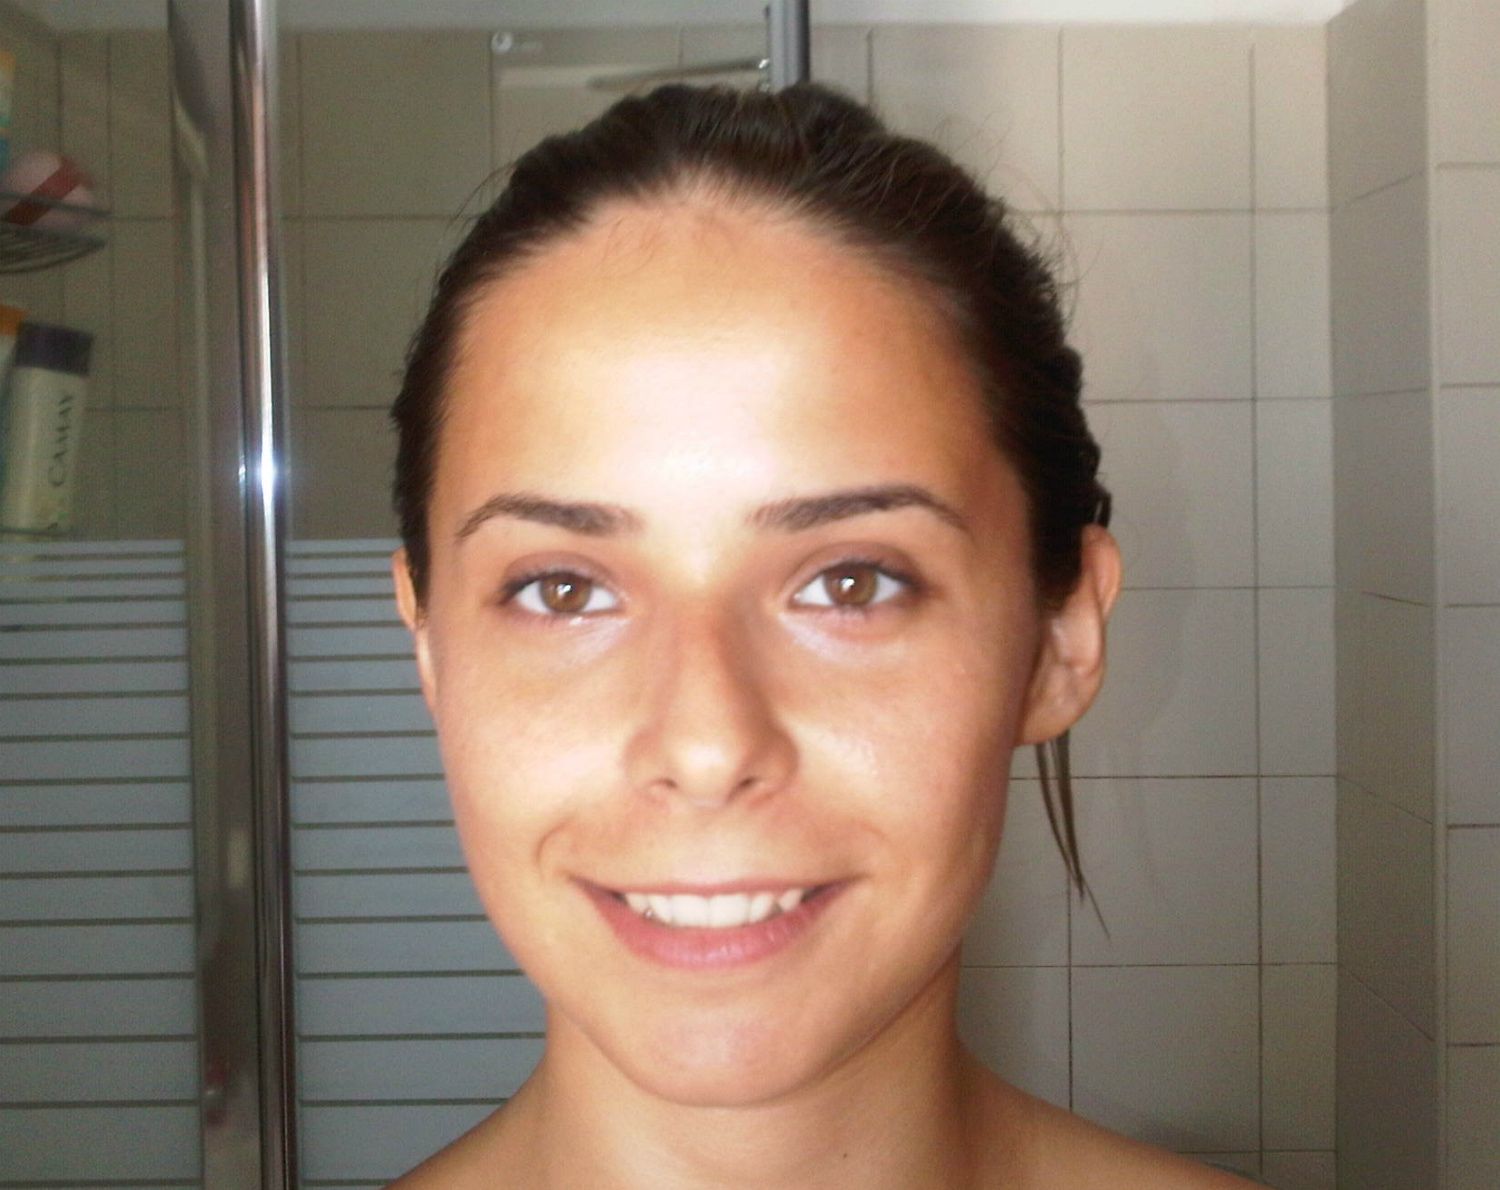 Which Haircut Suits My Round Face And Large Forehead? - Beauty throughout Haircut For Round Face And Big Forehead